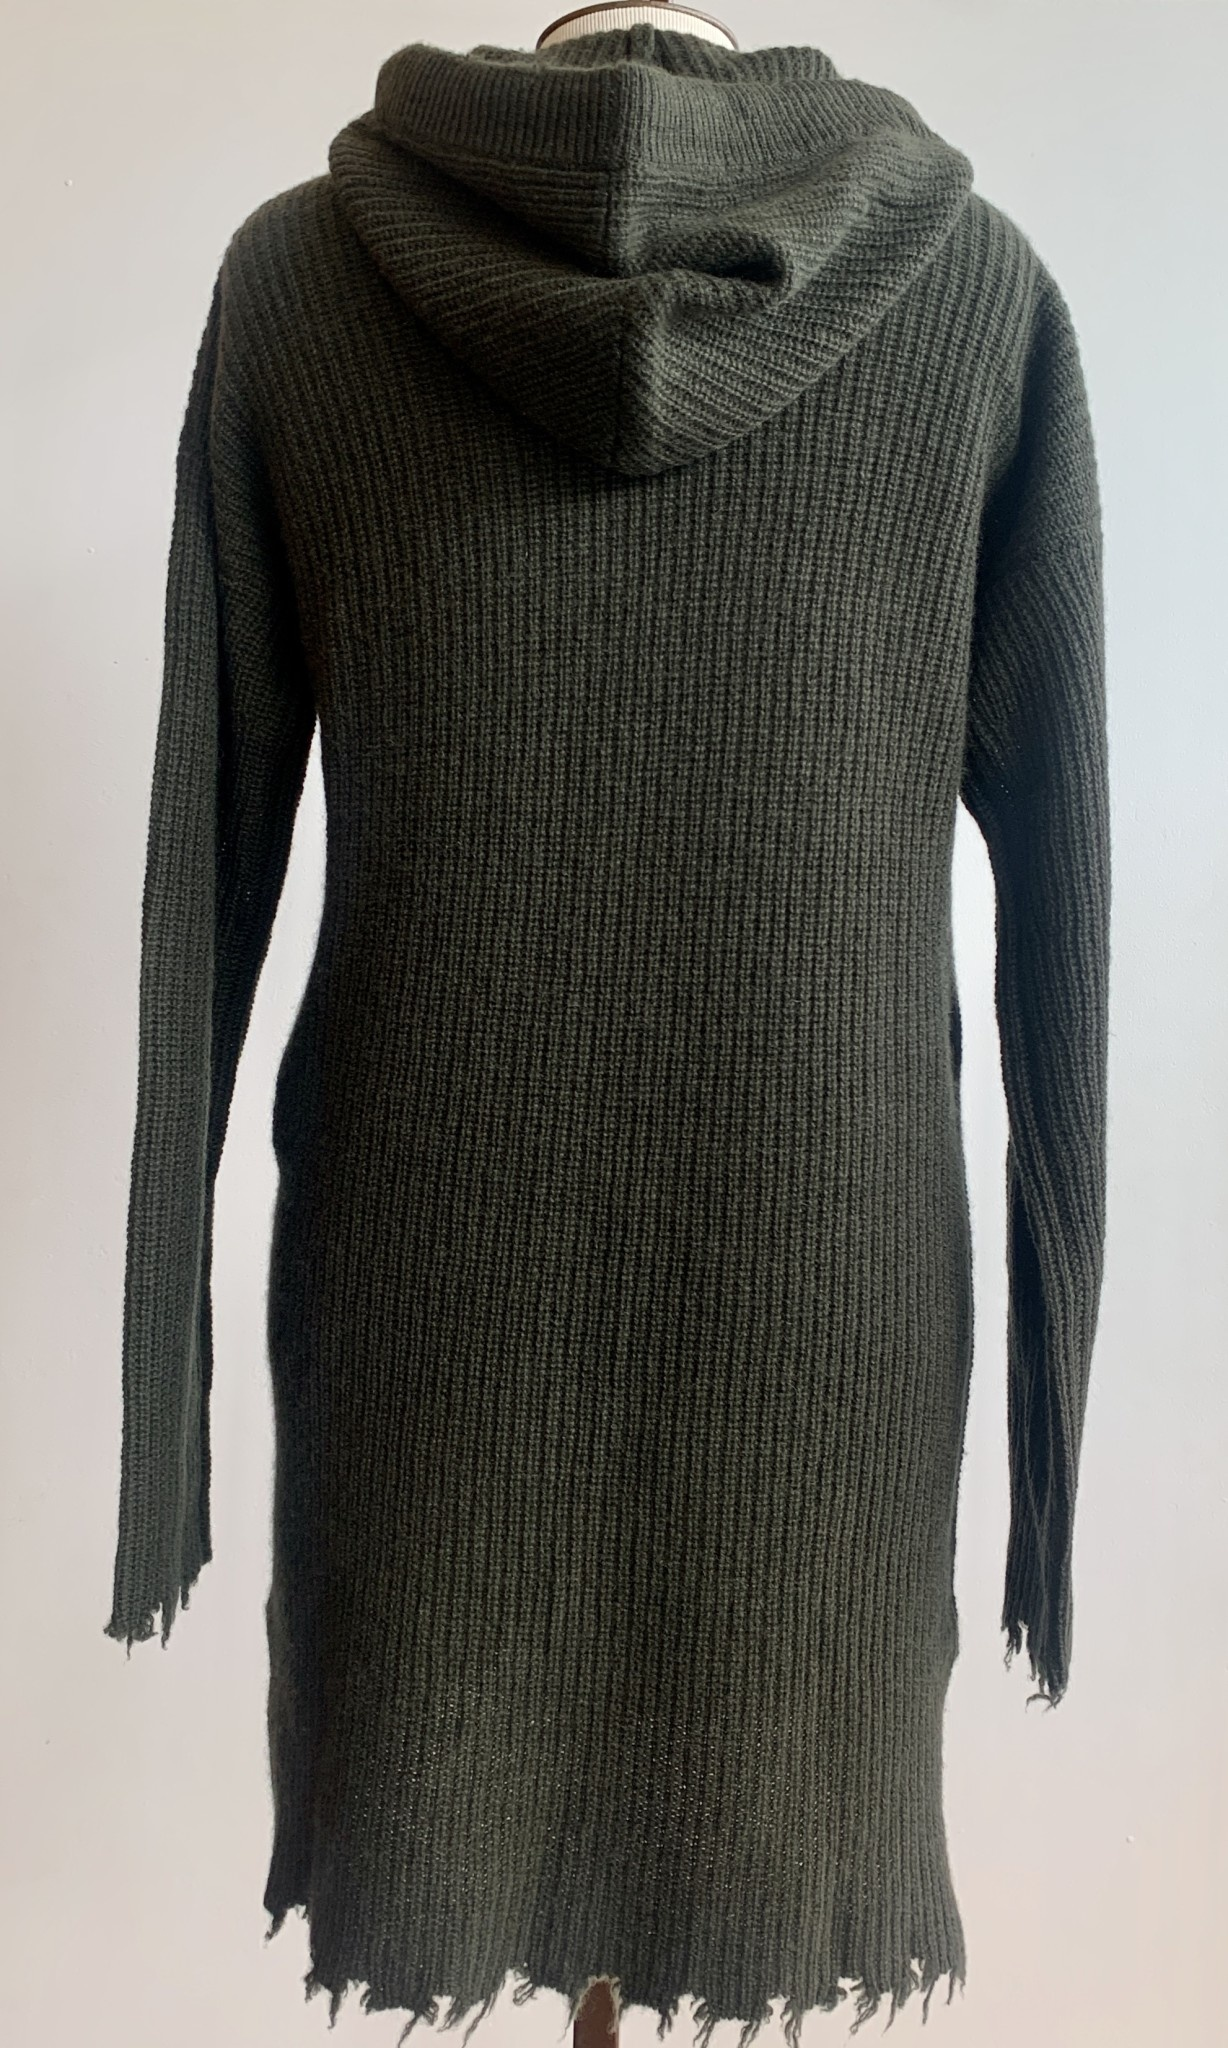 Autumn Cashmere Distressed Shaker Tunic